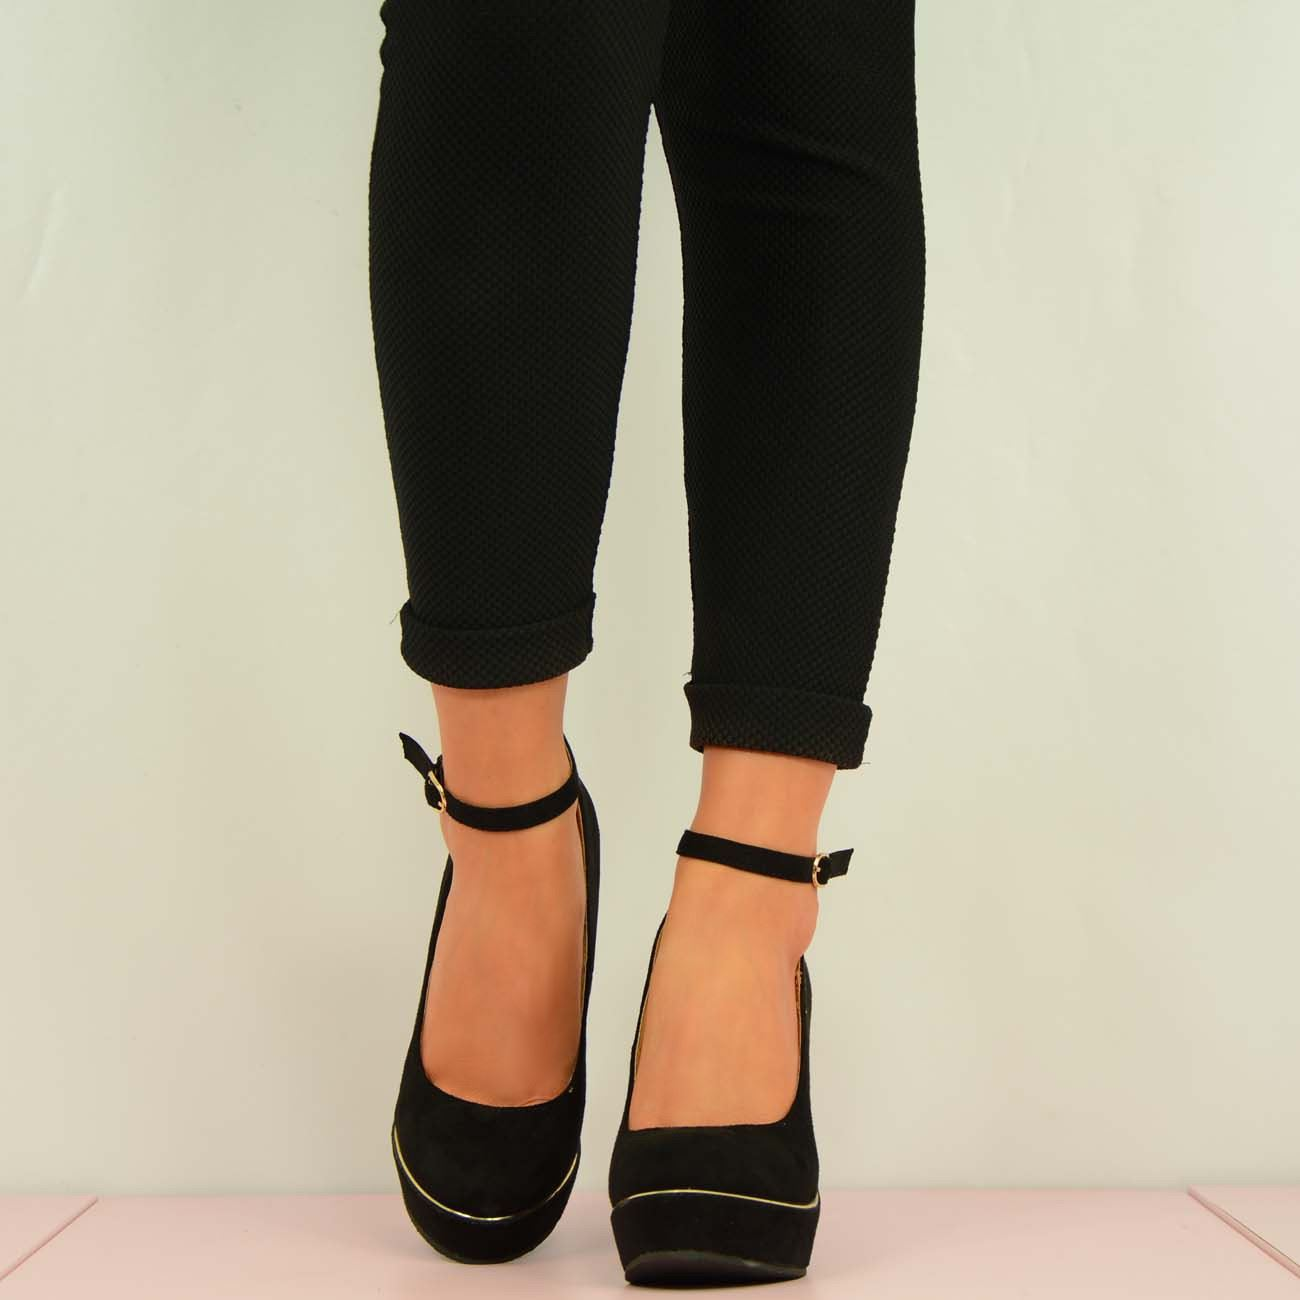 New-Womens-High-Heel-Wedges-Ladies-Black-Ankle-Strap-Platforms-Shoes-Size-Uk-3-8